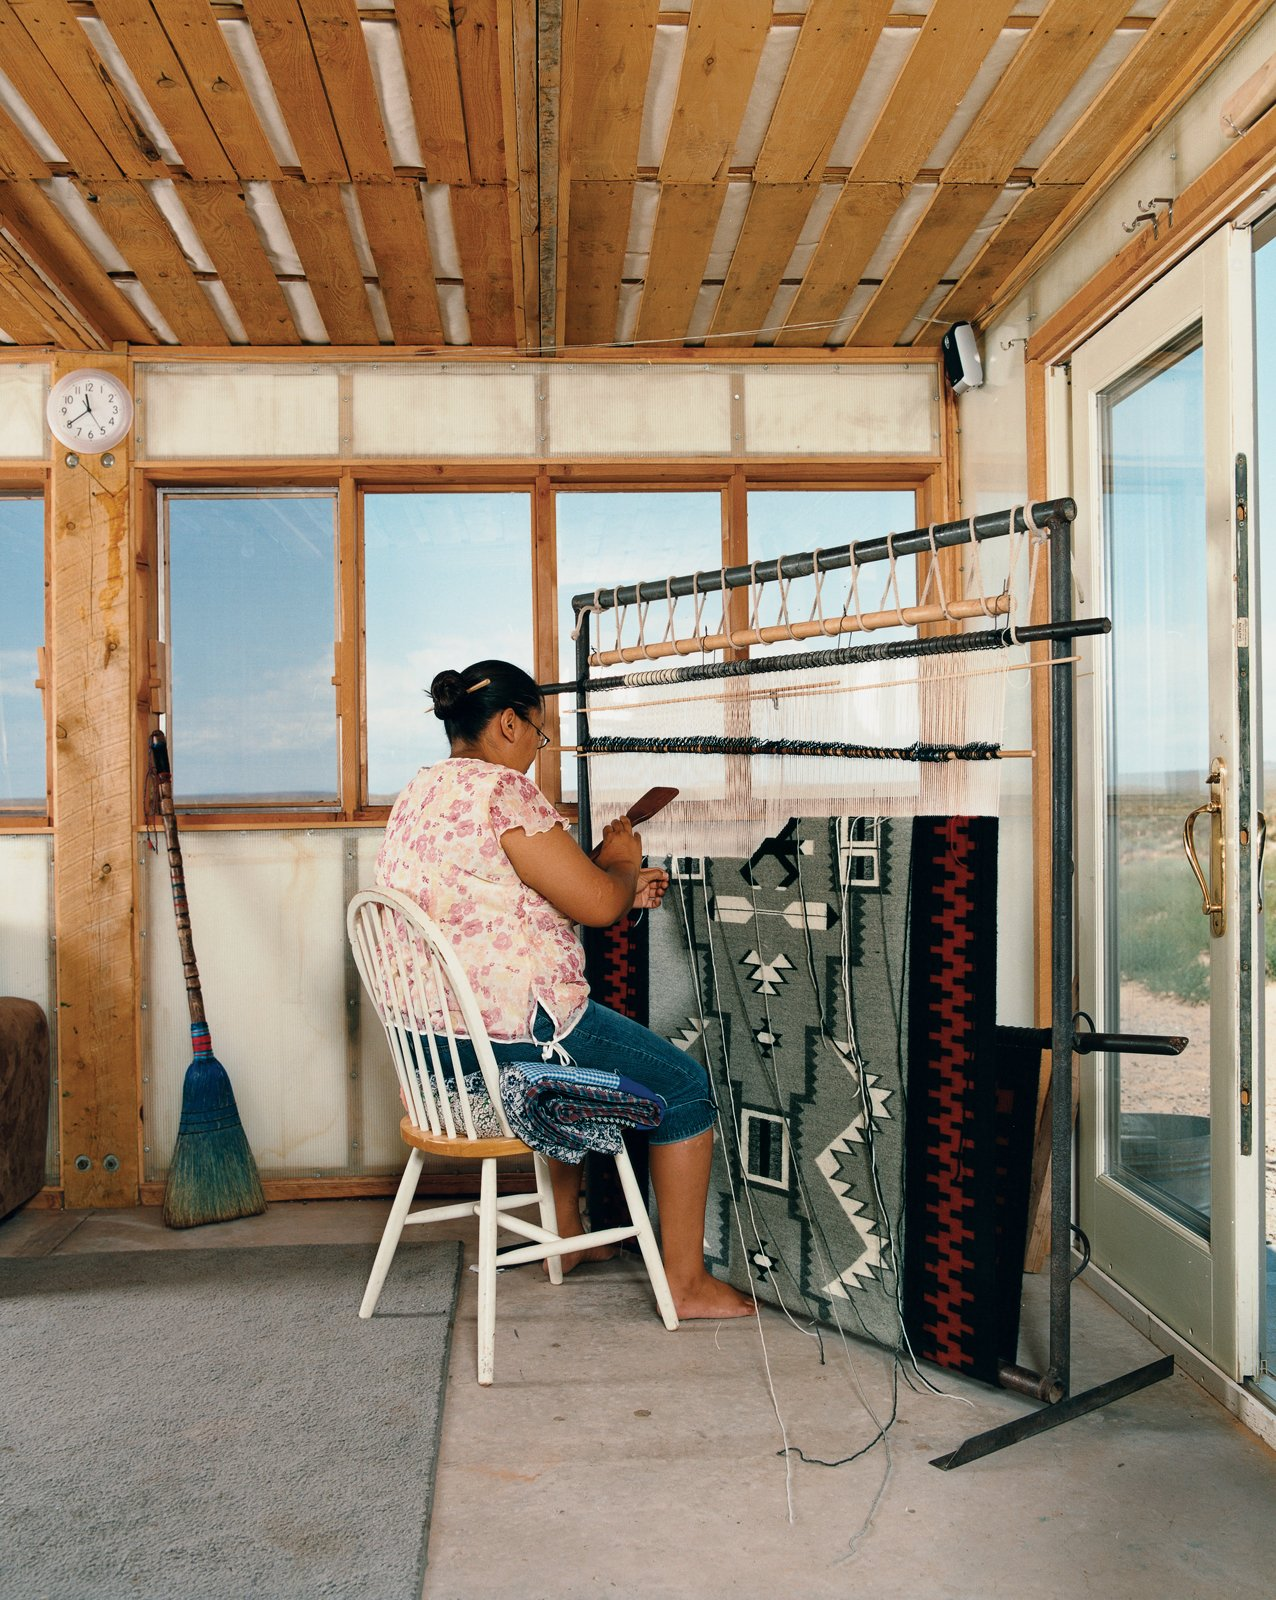 Rosie Joe weaves a traditional Navajo rug.  Photo 5 of 8 in No Grid in Sight